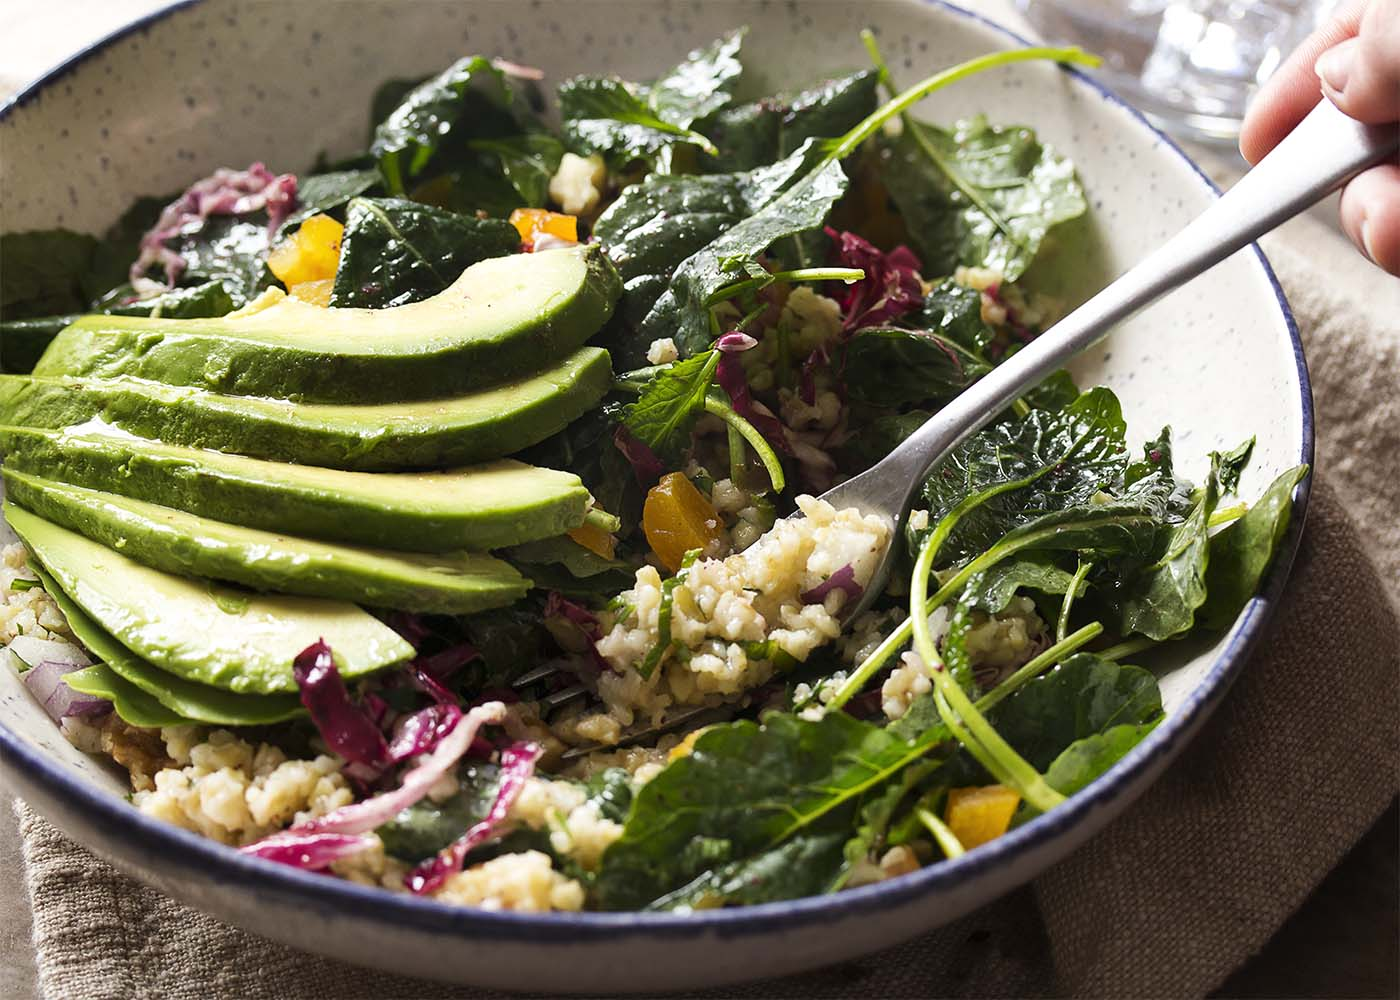 Close up of a kale freekeh salad buddha bowl with a fork scooping out a bite.